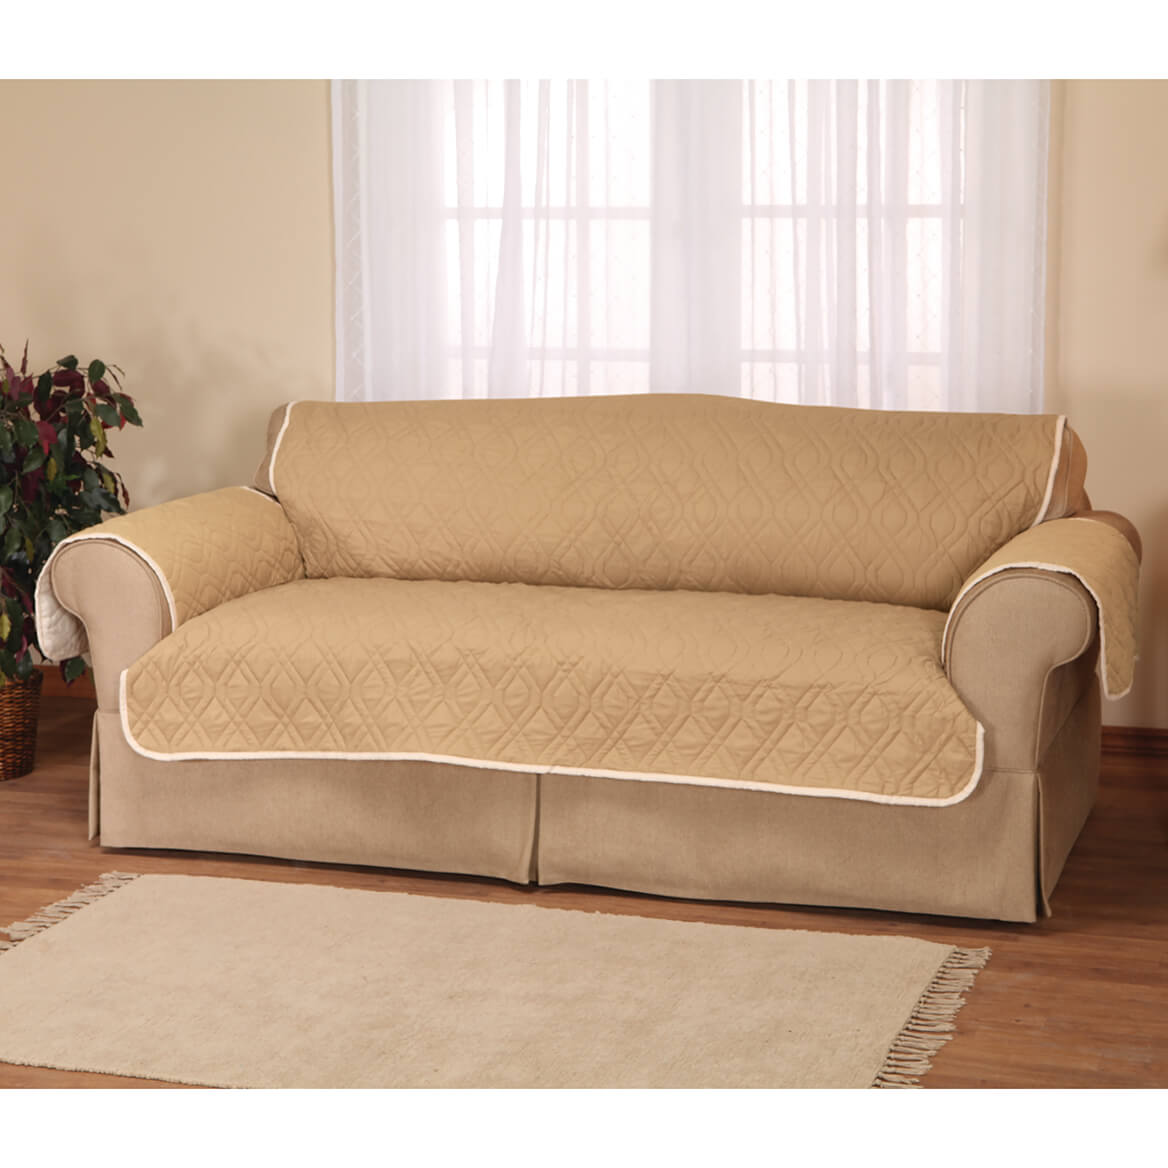 Select Quantity   +. Saved To Wishlist Save To Wishlist Add To Cart.  Description: This 5 Star Reversible Waterproof Sofa Protector ...